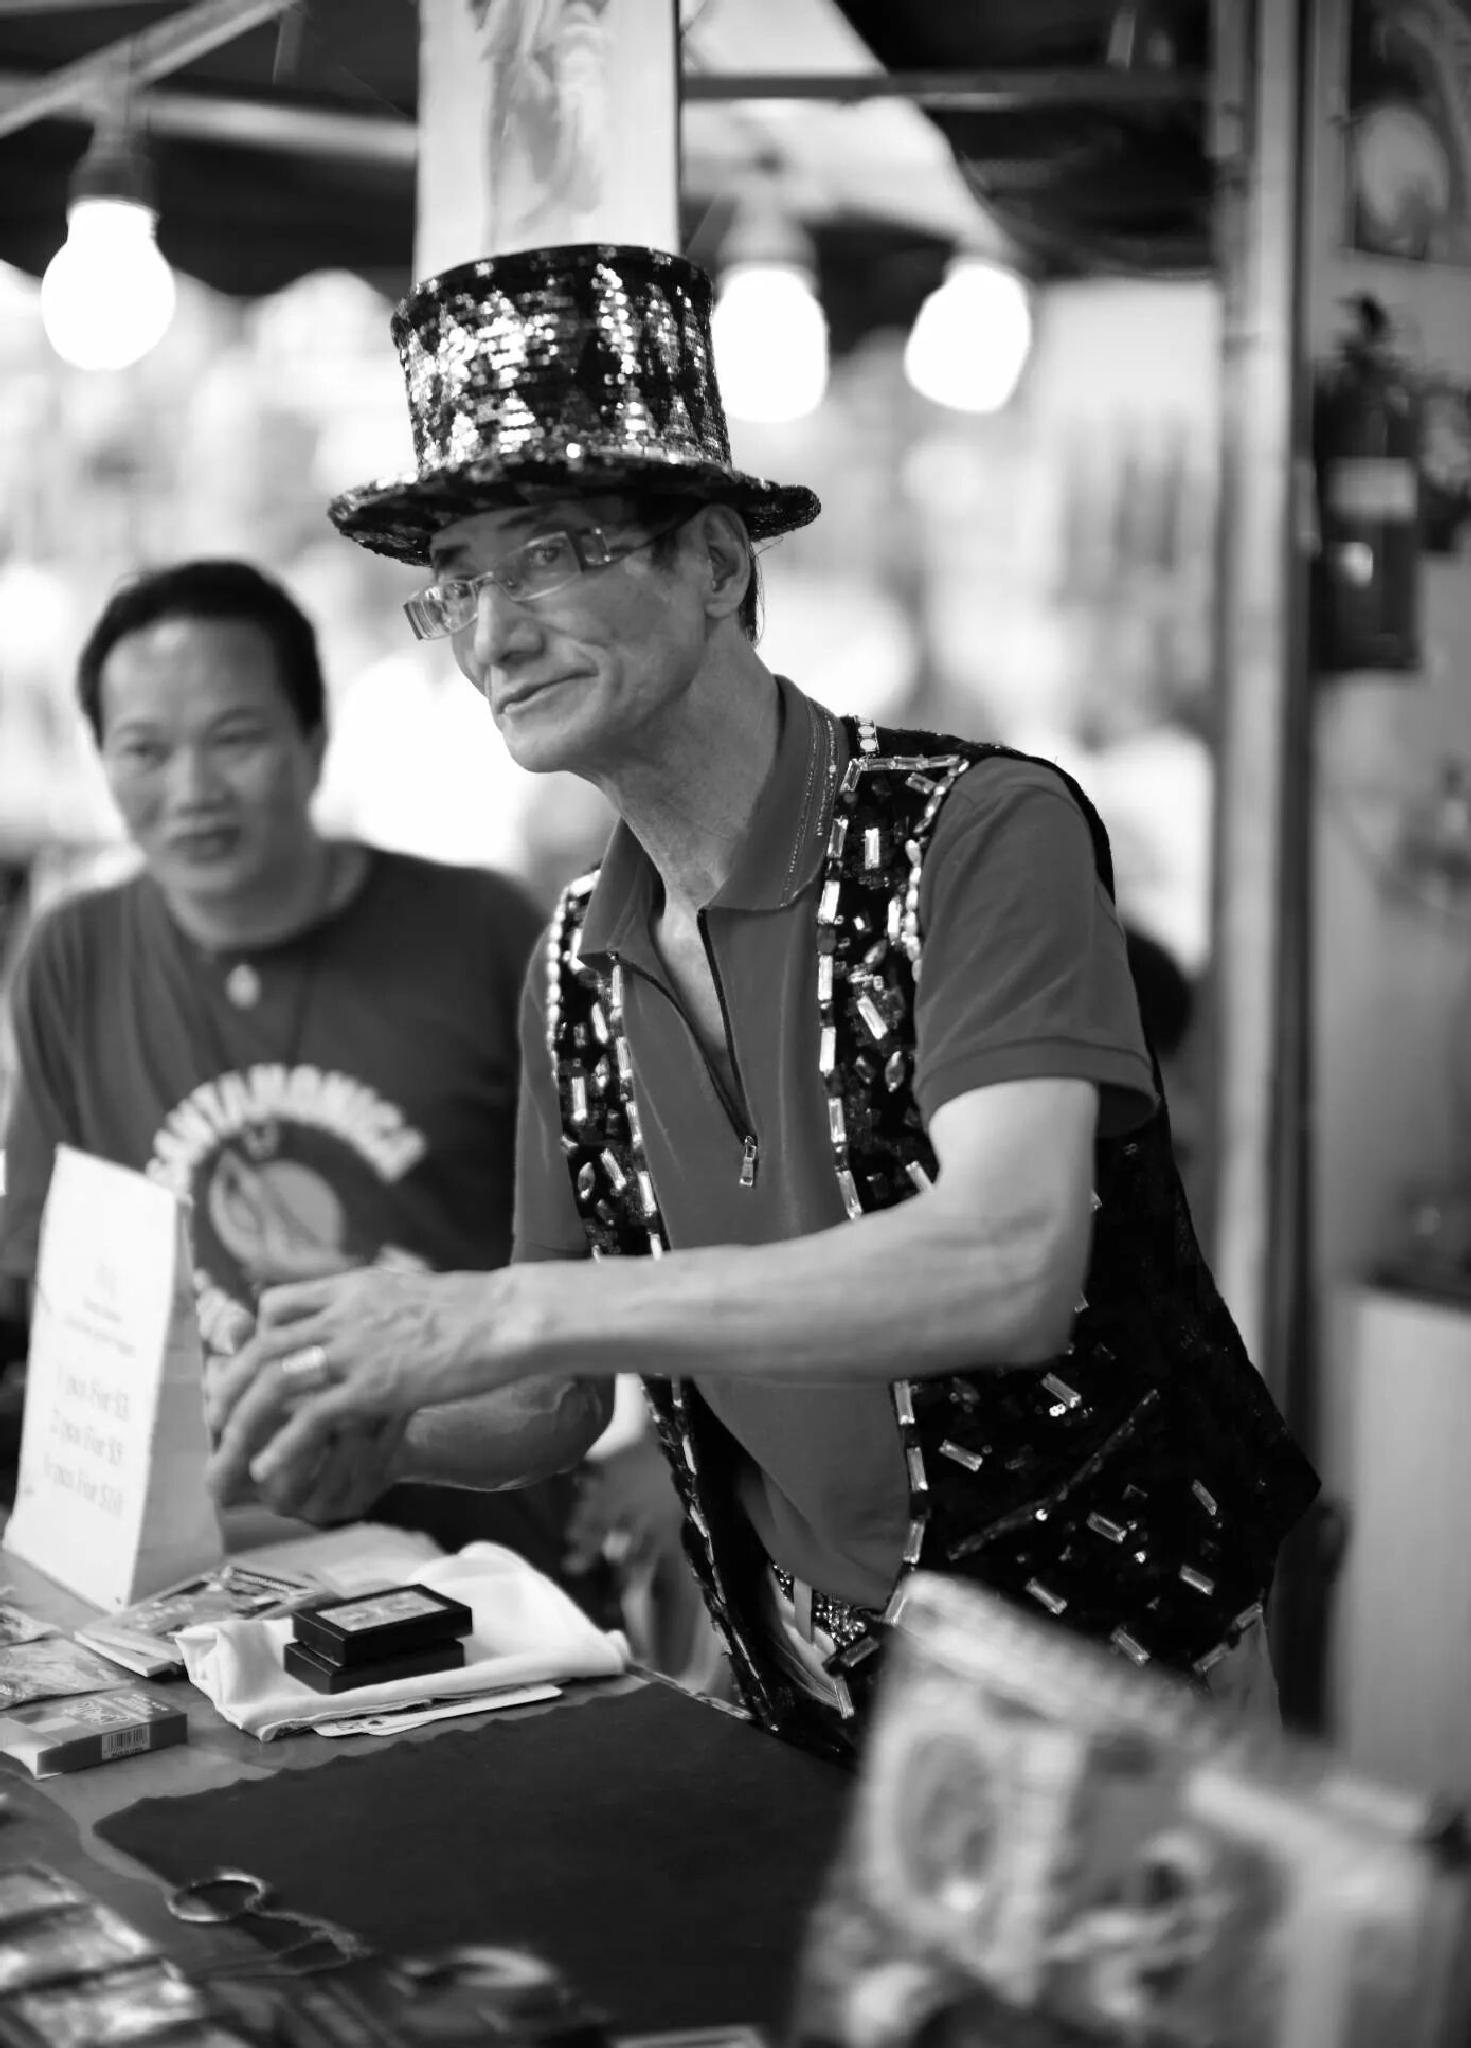 Magician at Singapore Chinatown by Bob Chiu